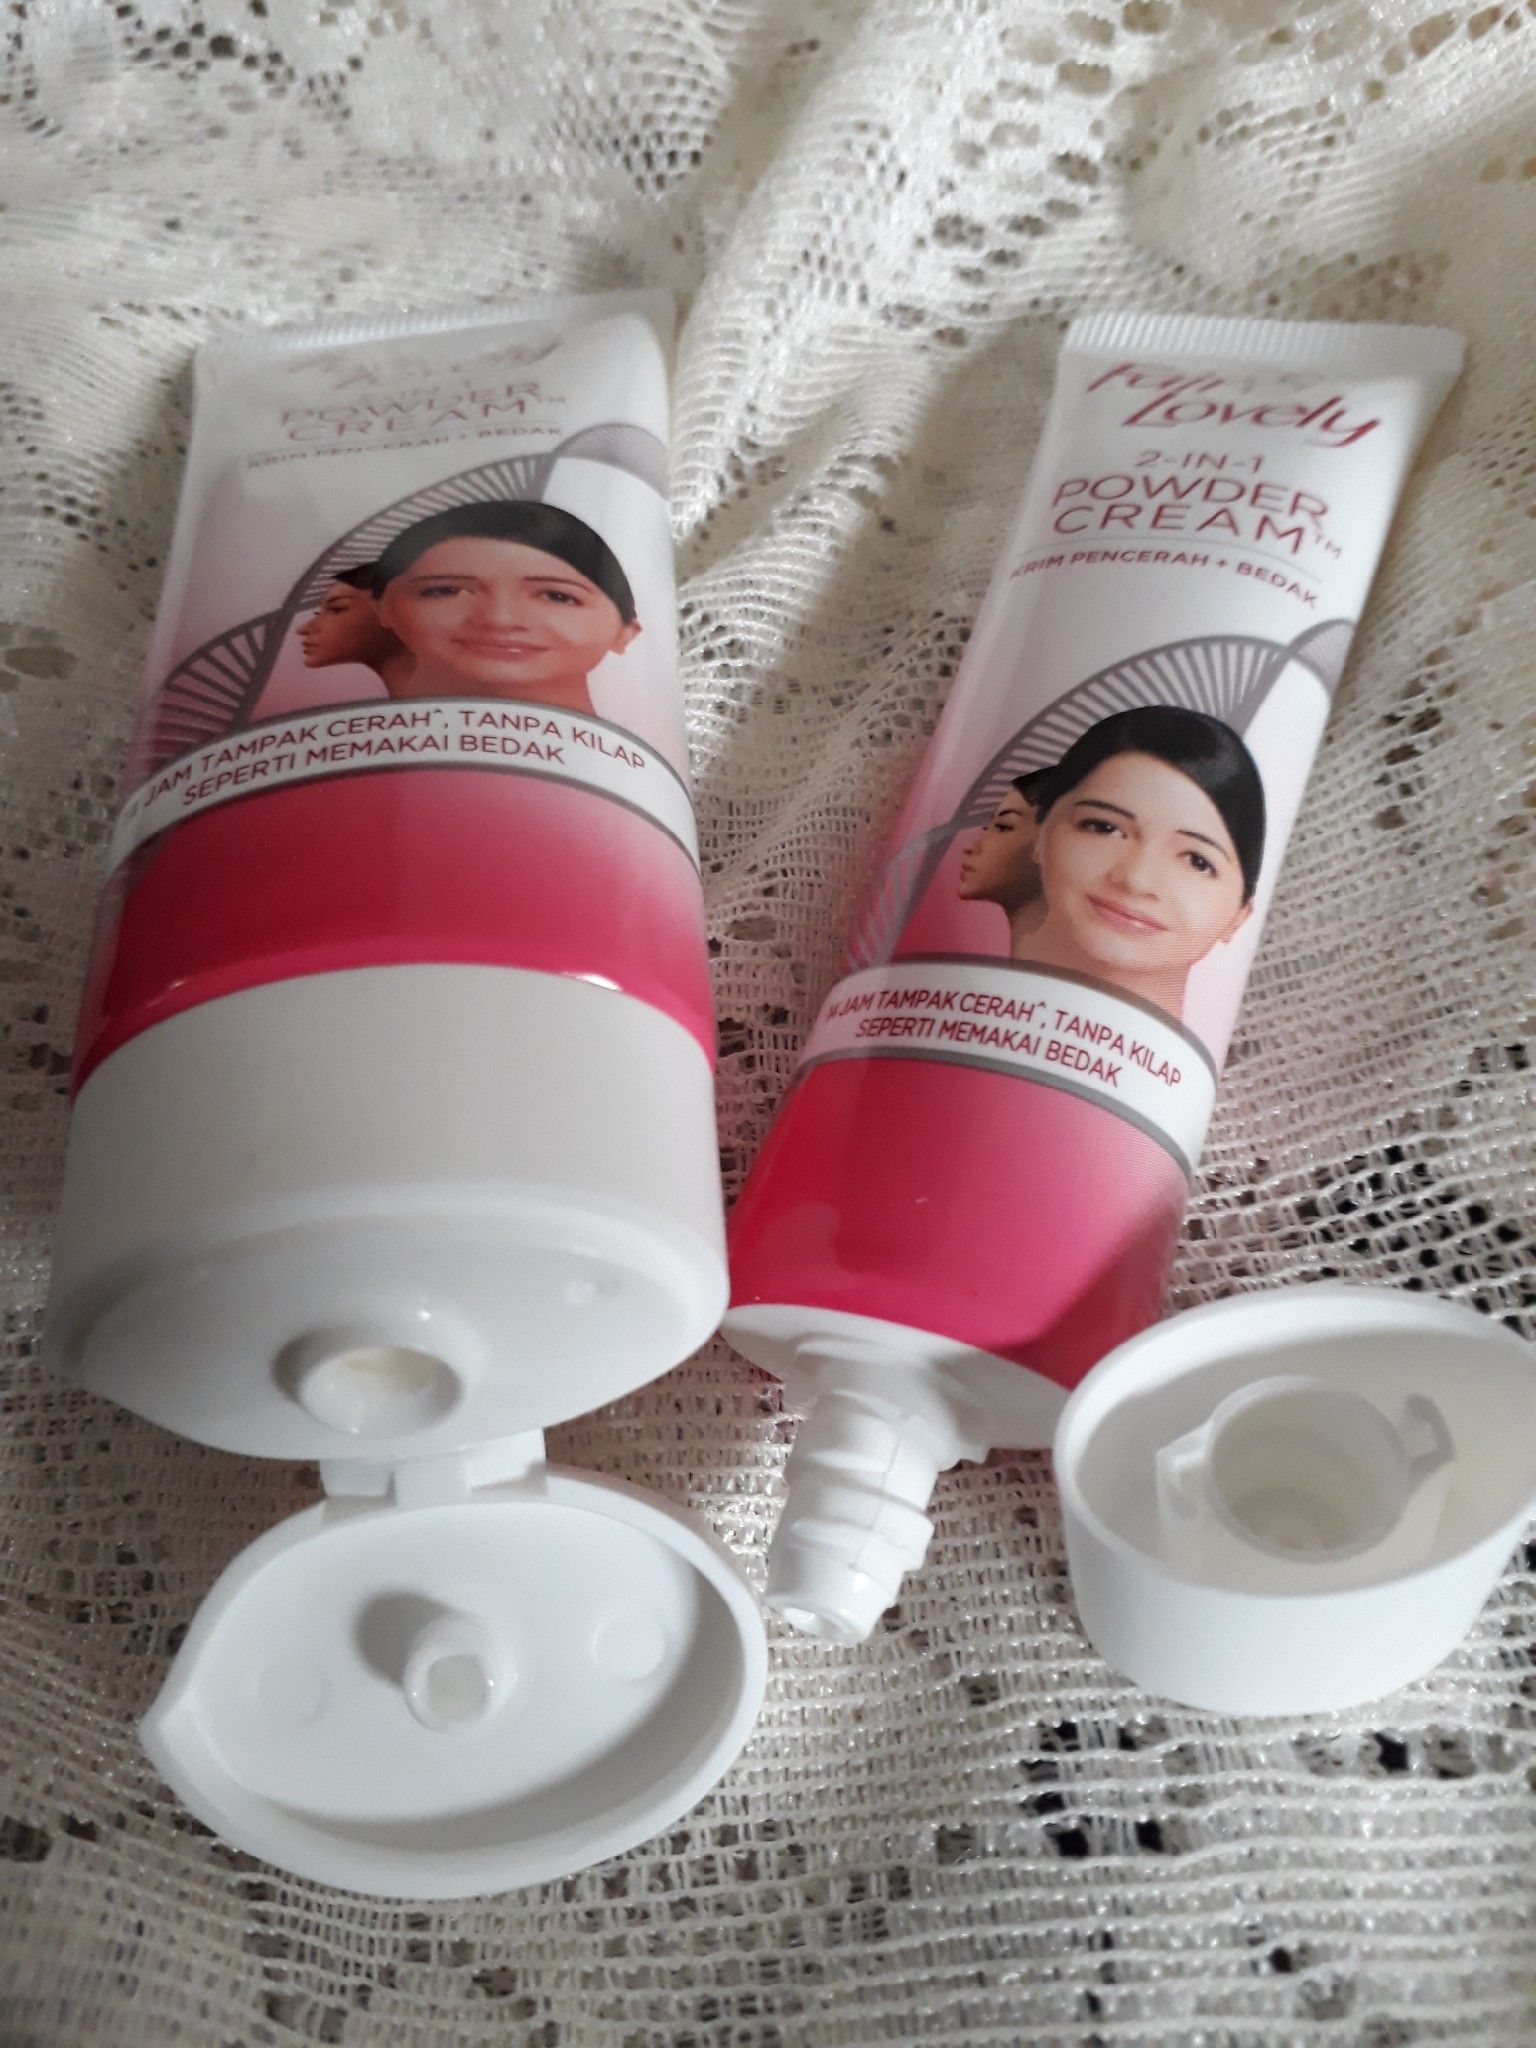 gambar review ke-6 untuk Fair & Lovely 2 in 1 Powder Cream